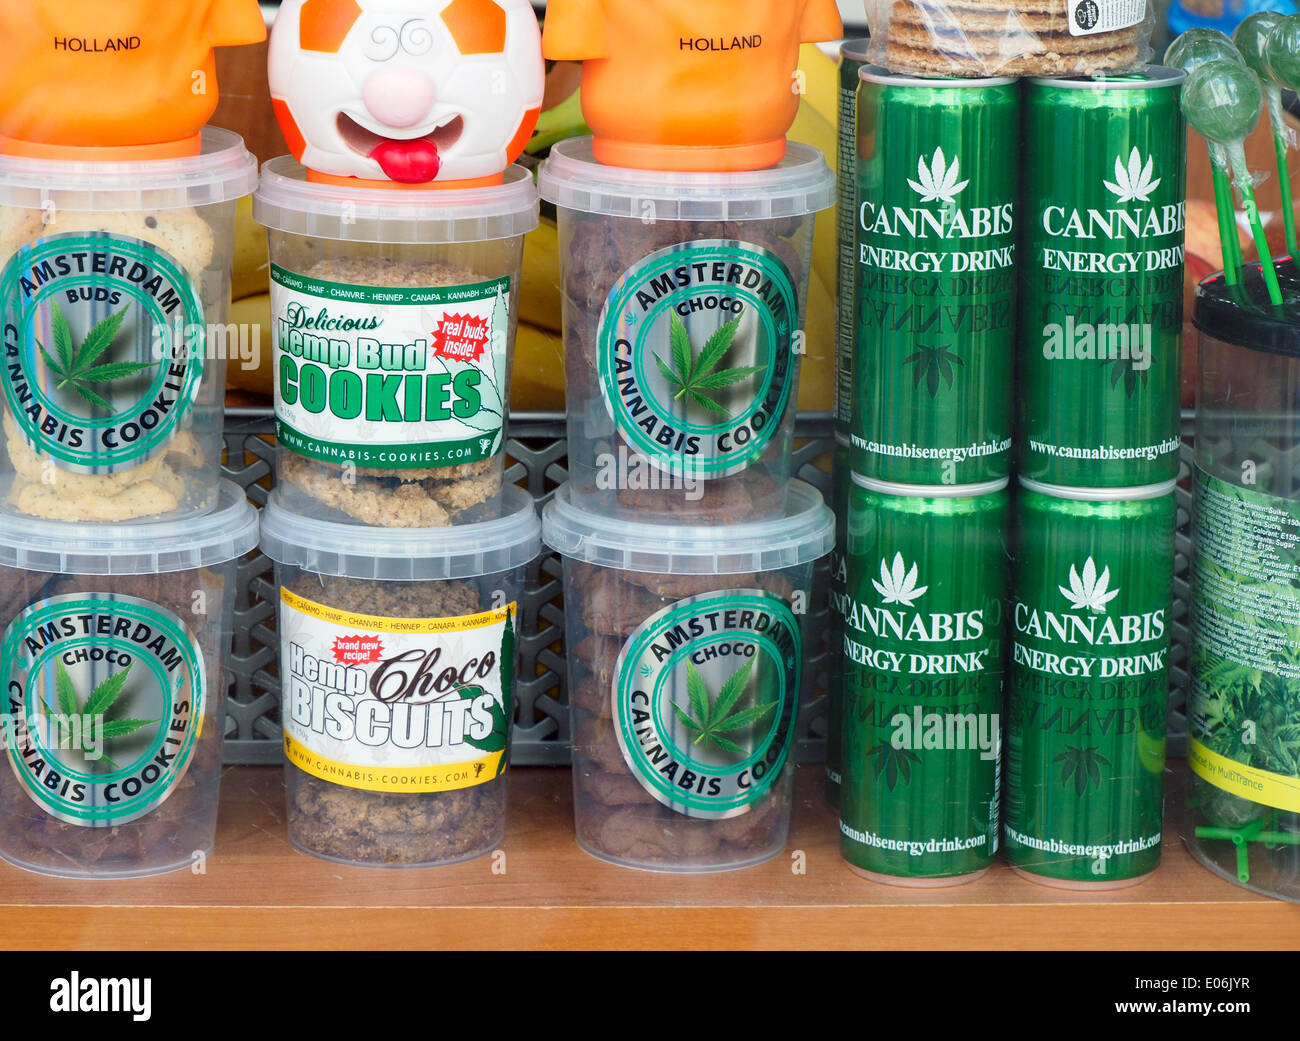 Cannabis Cookies Biscuits & Sodas in Amsterdam Store Window - Stock Image